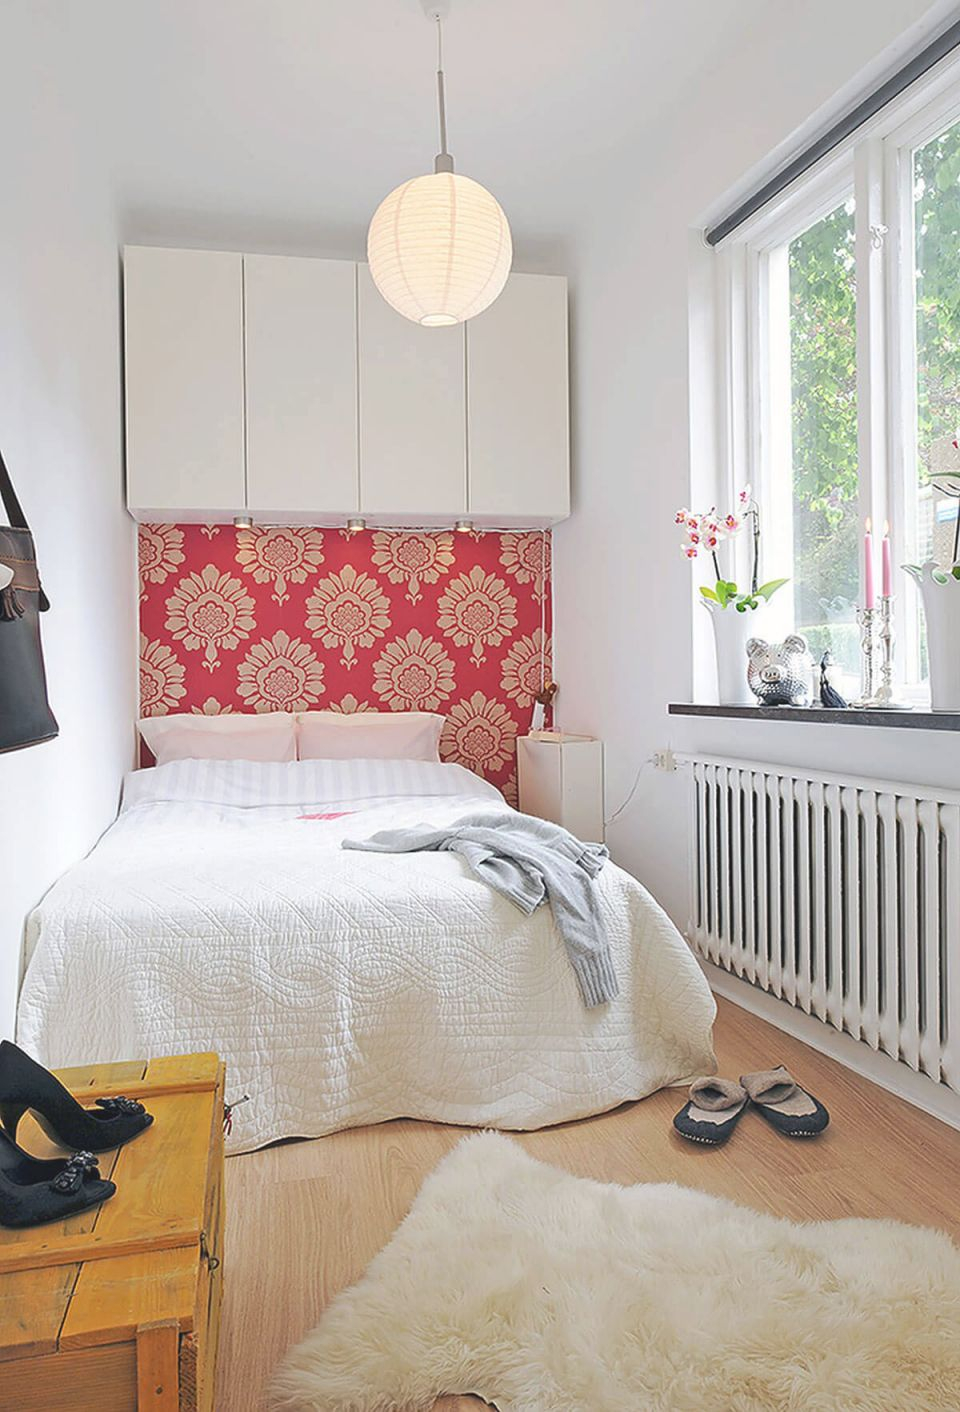 37 Best Small Bedroom Ideas And Designs For 2020 pertaining to Best of Small Bedroom Decoration Ideas